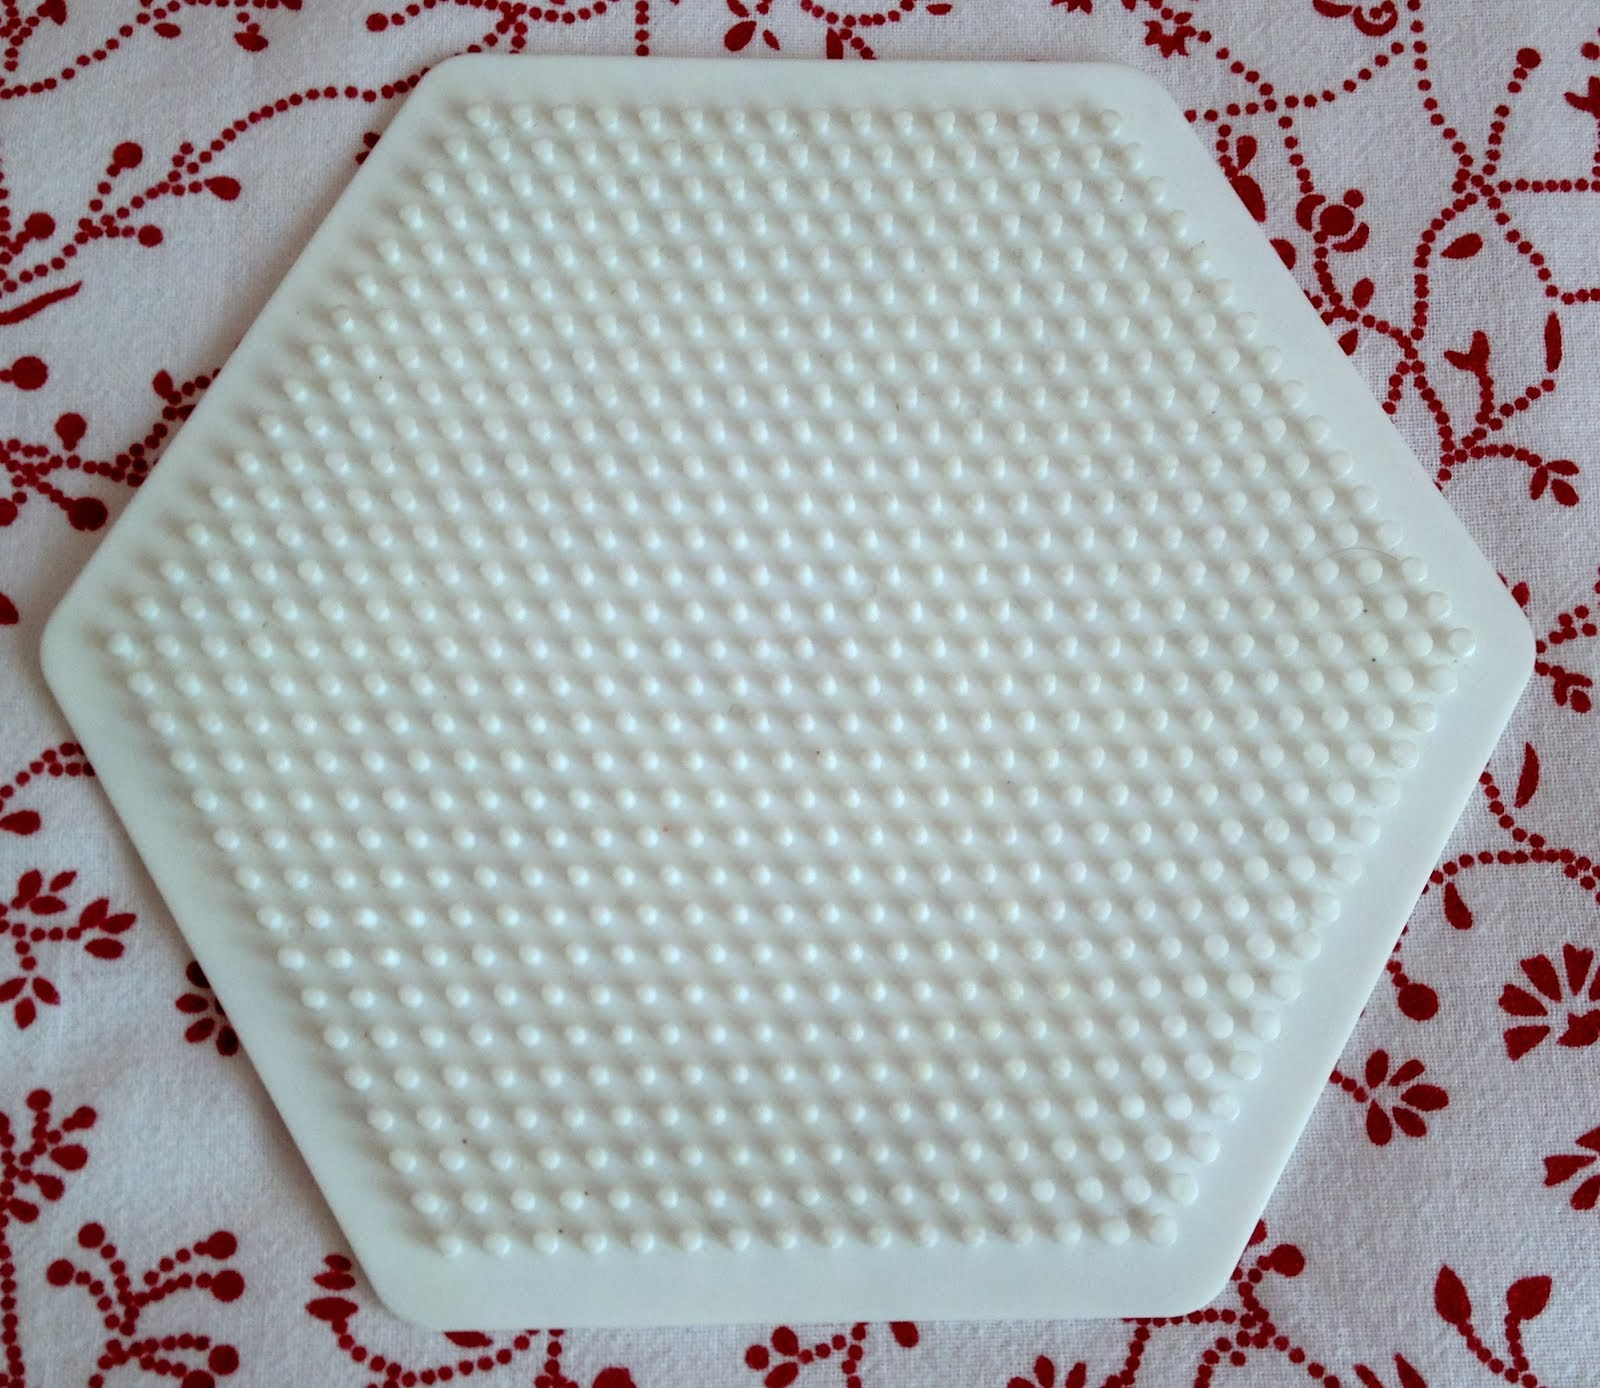 Base hexagonal para Hama beads